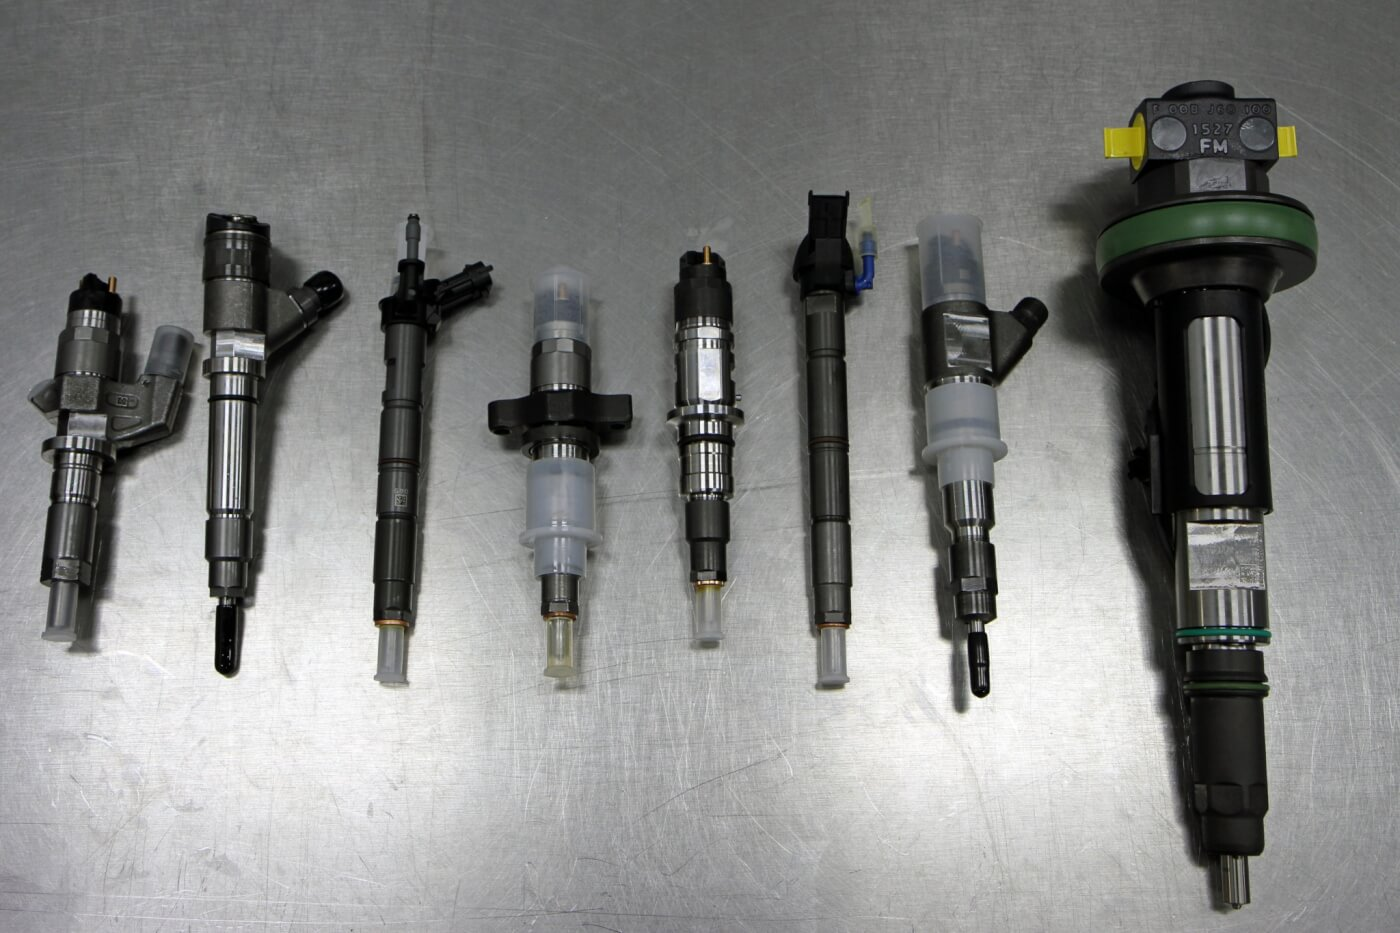 14. Here is a selection of some of the injector options offered by S&S Diesel Motorsport covering everything from stock type injectors up to monster injectors for custom applications. From left to right are injectors for an LB7, LBZ, LML (piezoelectric), 5.9L Cummins, 6.7L Cummins (next gen), 6.7L Scorpion, Case IH and LE (Large Engine with 2.5 to 3.0L per cylinder).